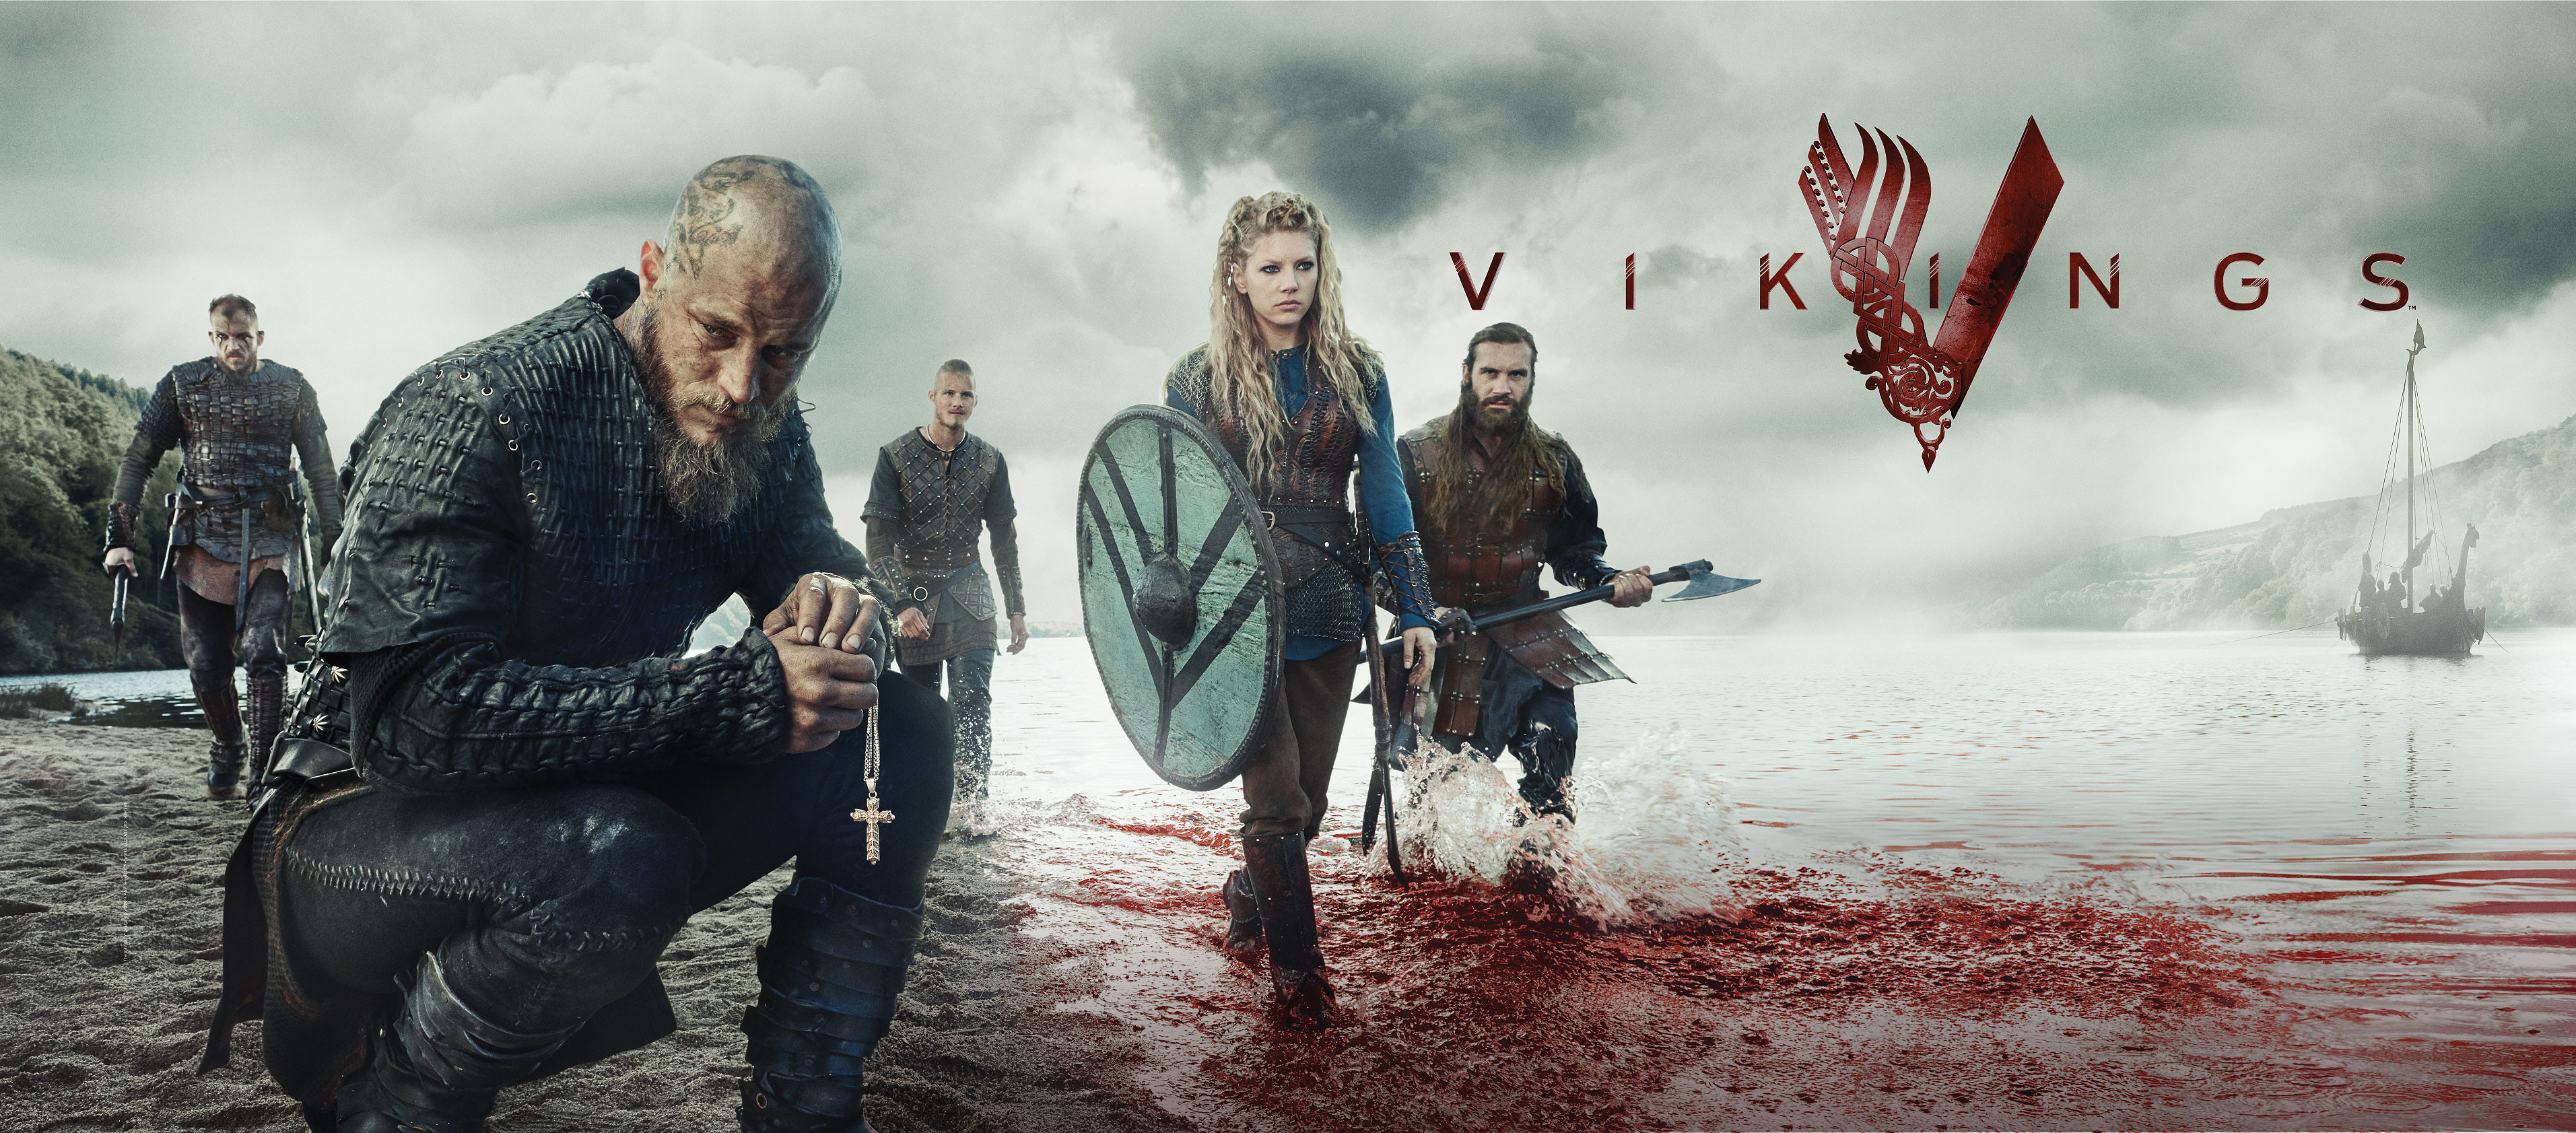 69 Hd Viking Wallpapers on WallpaperPlay 3826x1683